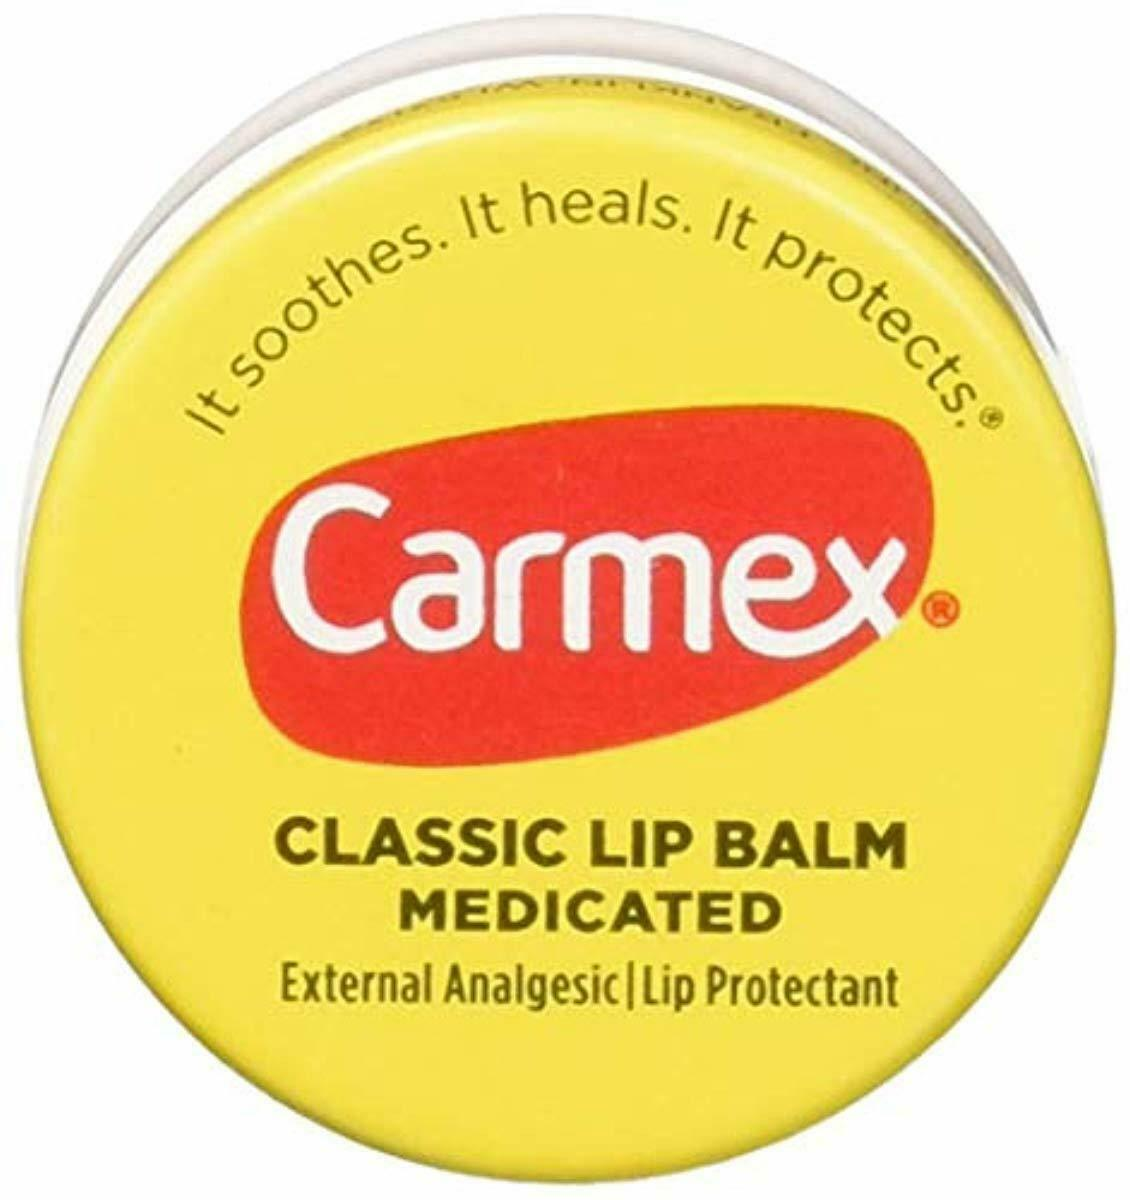 Carmex Classic Lip Balm Medicated 0.25 oz (Pack of 12)